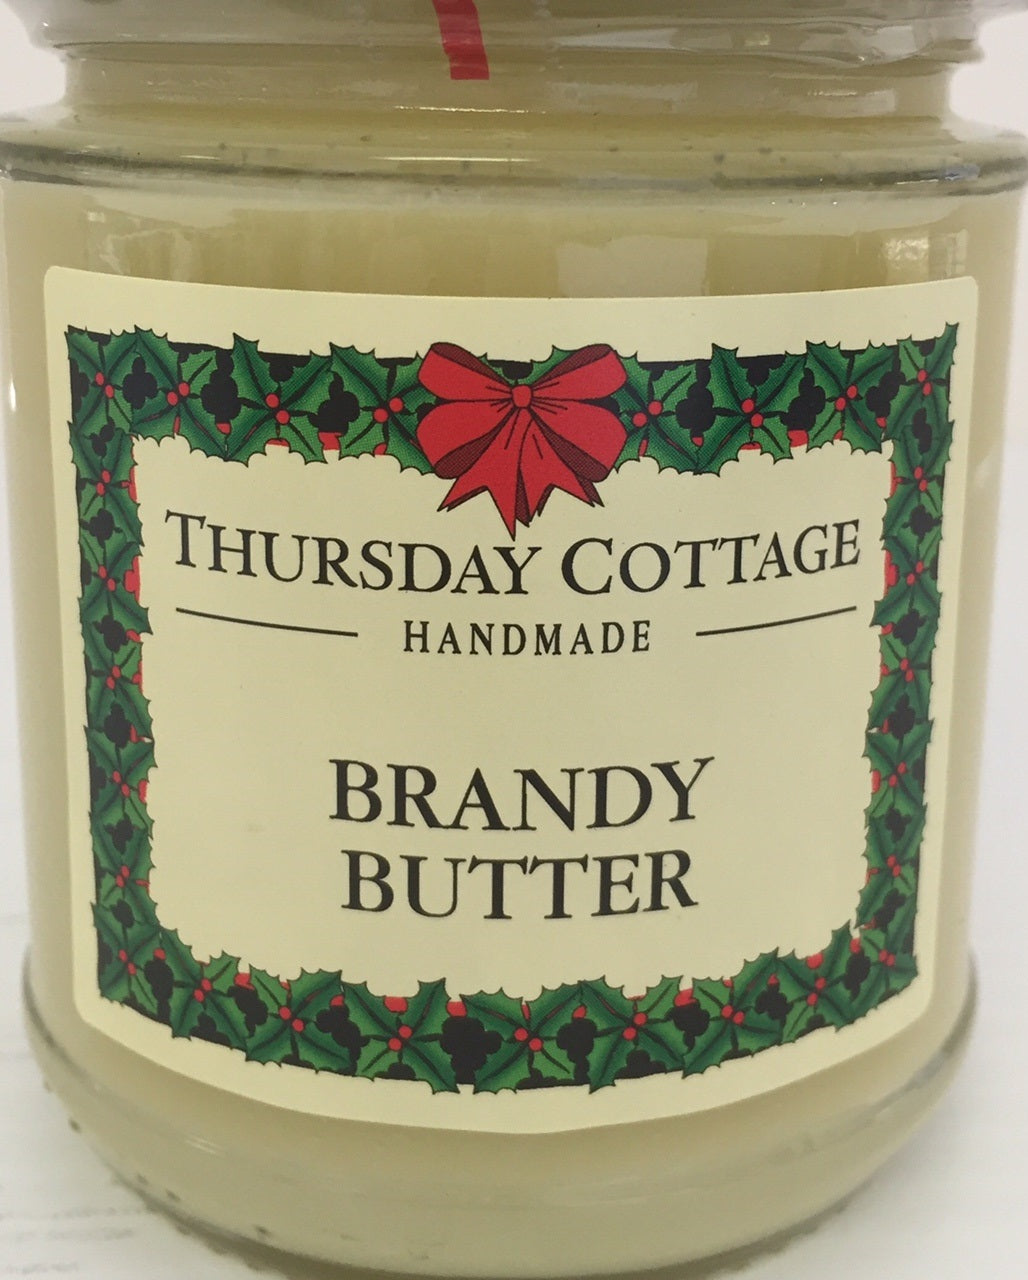 Thursday Cottage Brandy Butter 7.5 oz  210g- Christmas